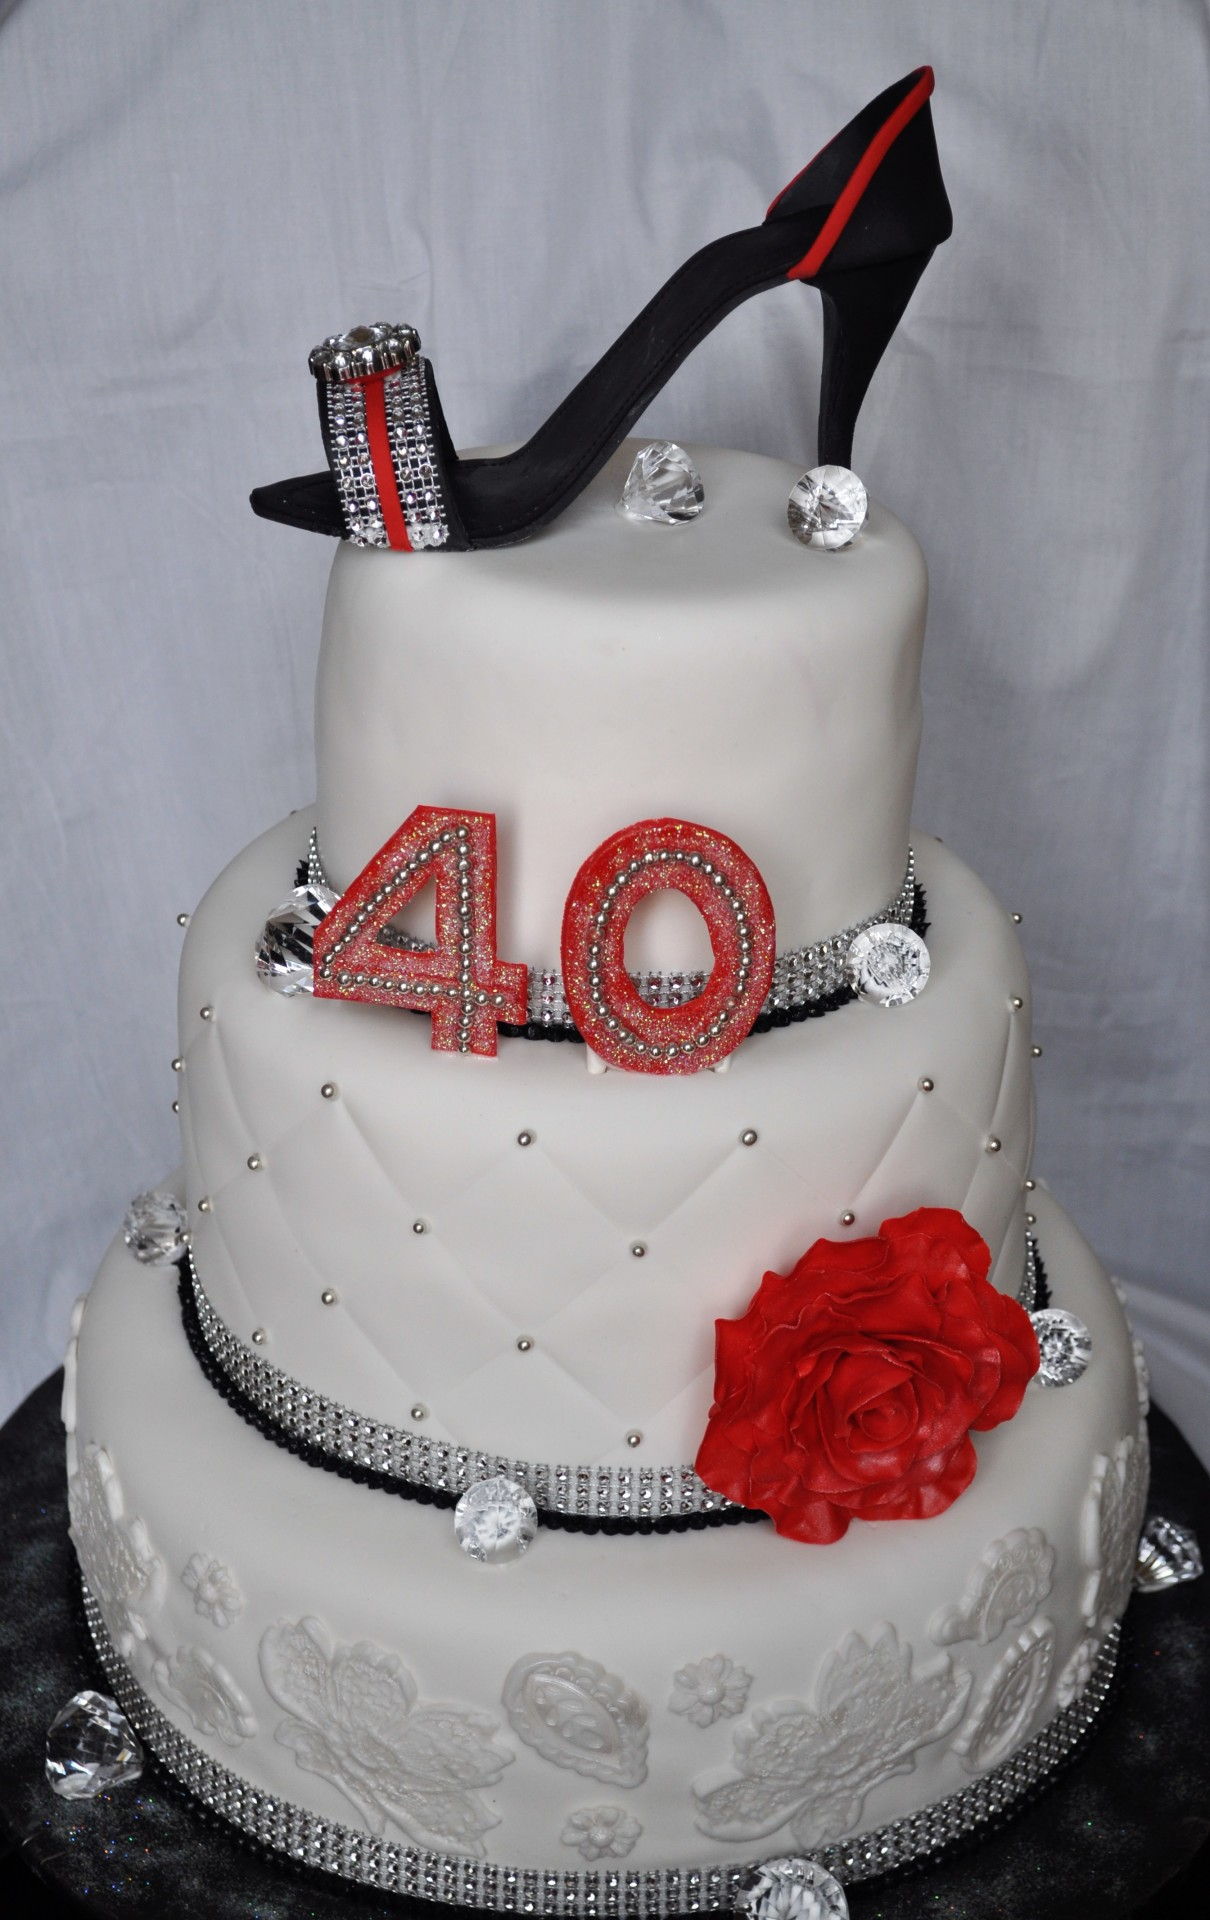 Heel, glam cake ,40th birthday cake for her